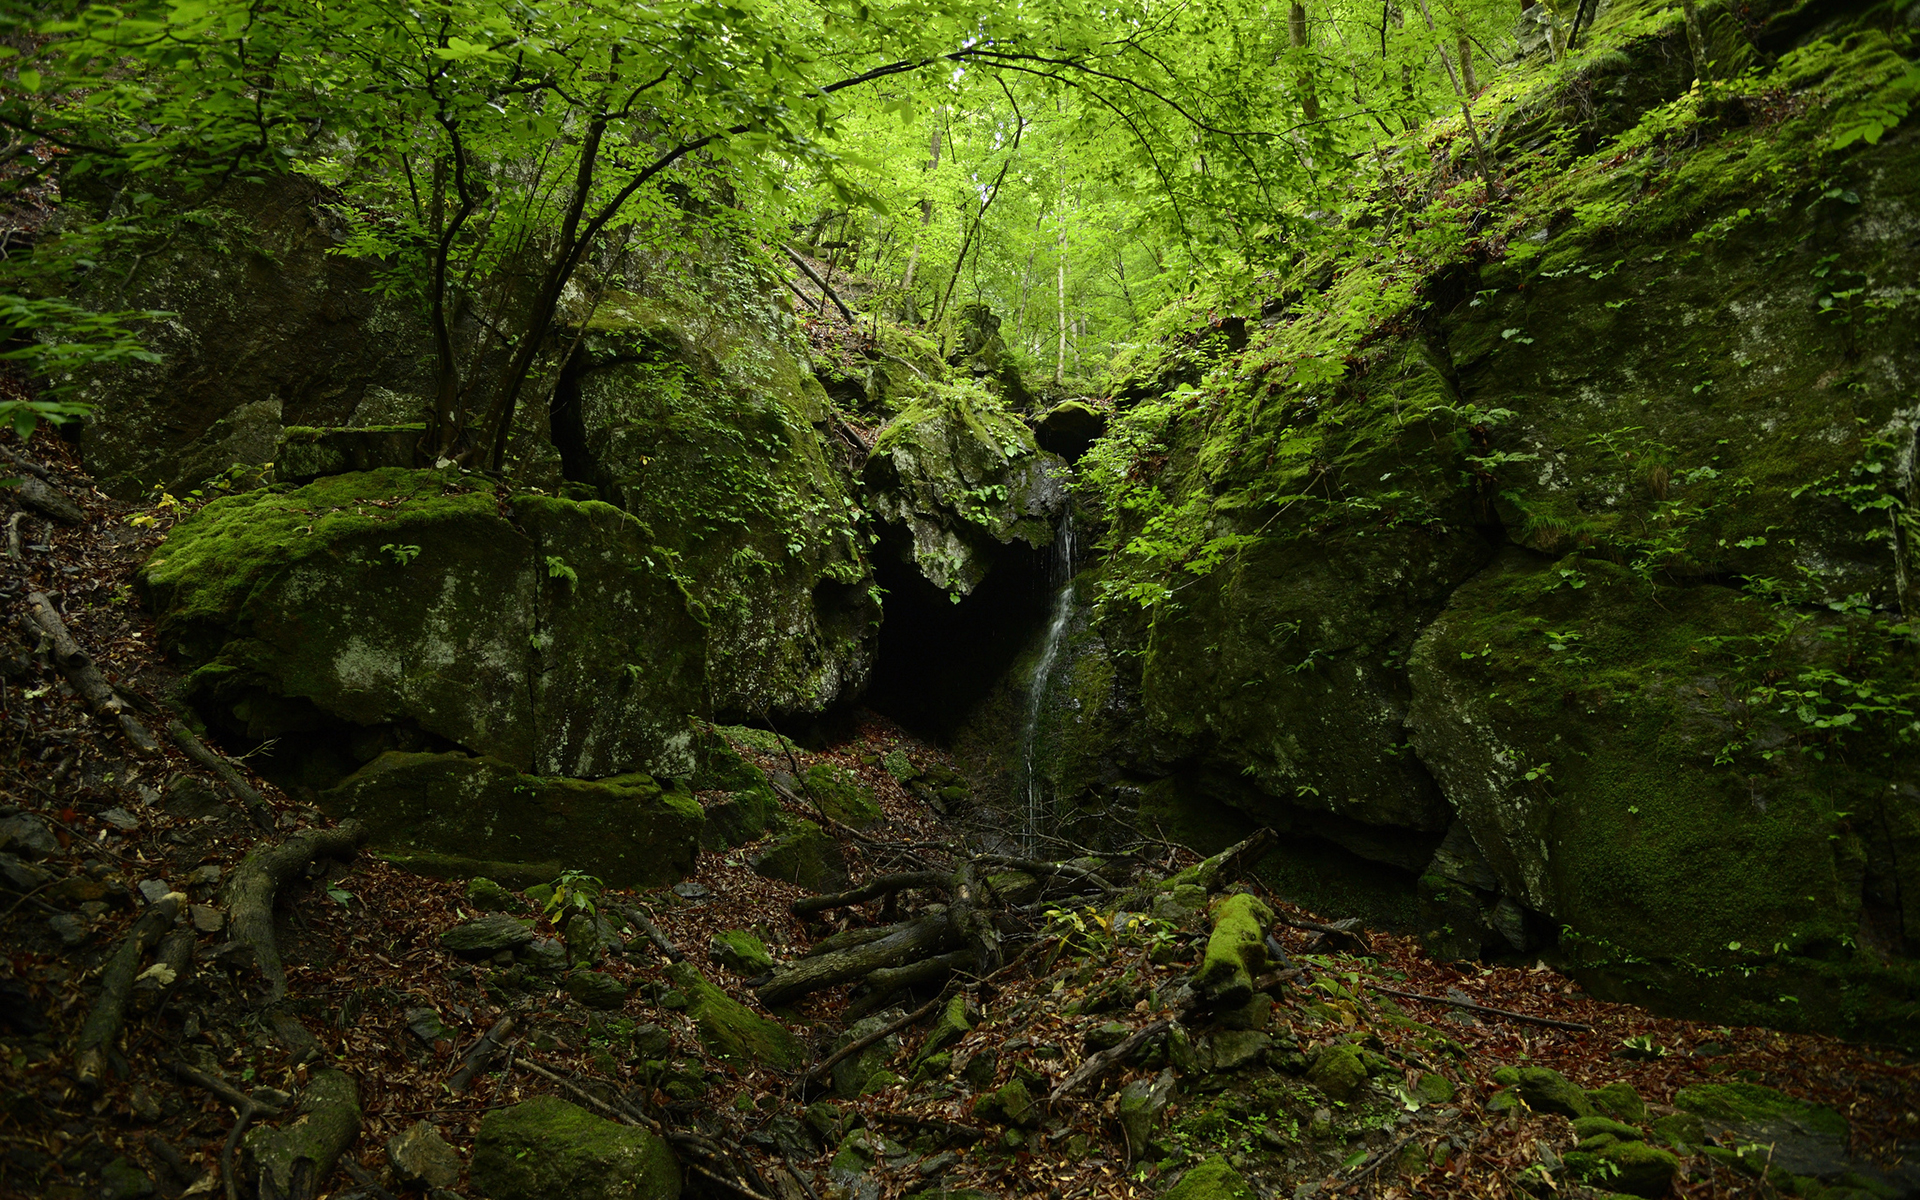 forest cave green trees wallpaper 1920x1200 119957 wallpaperup